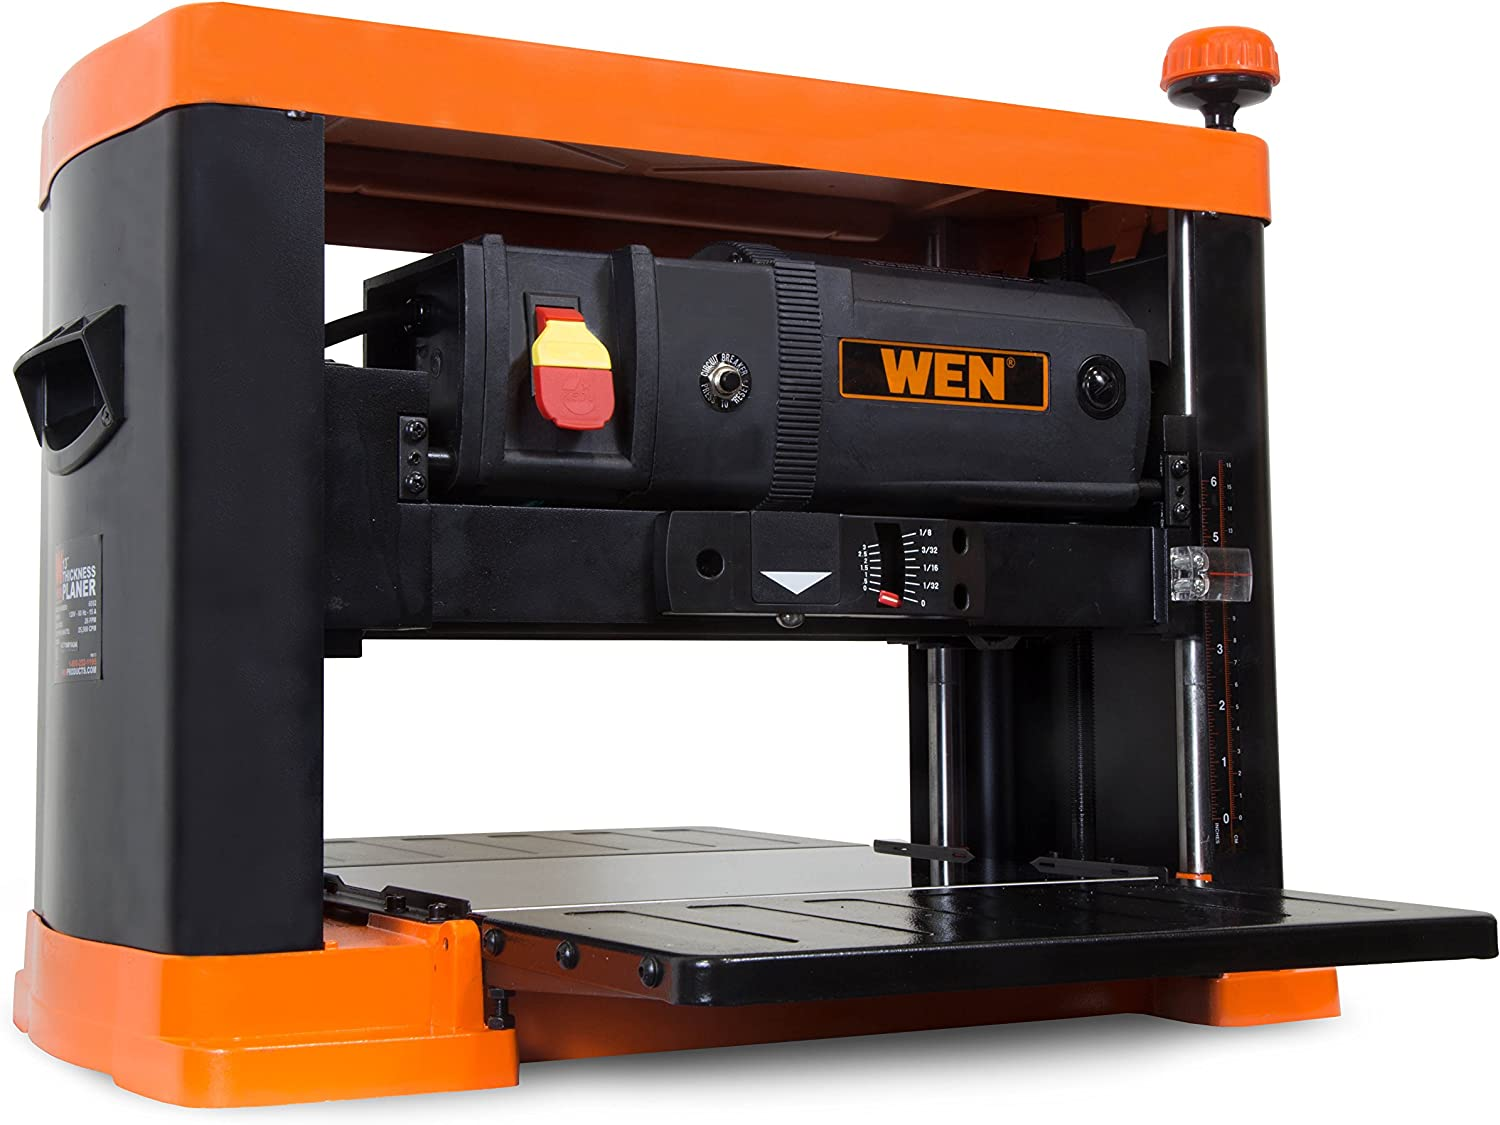 5. WEN 6552T 13-Inch 3-Blade Benchtop Thickness Planer